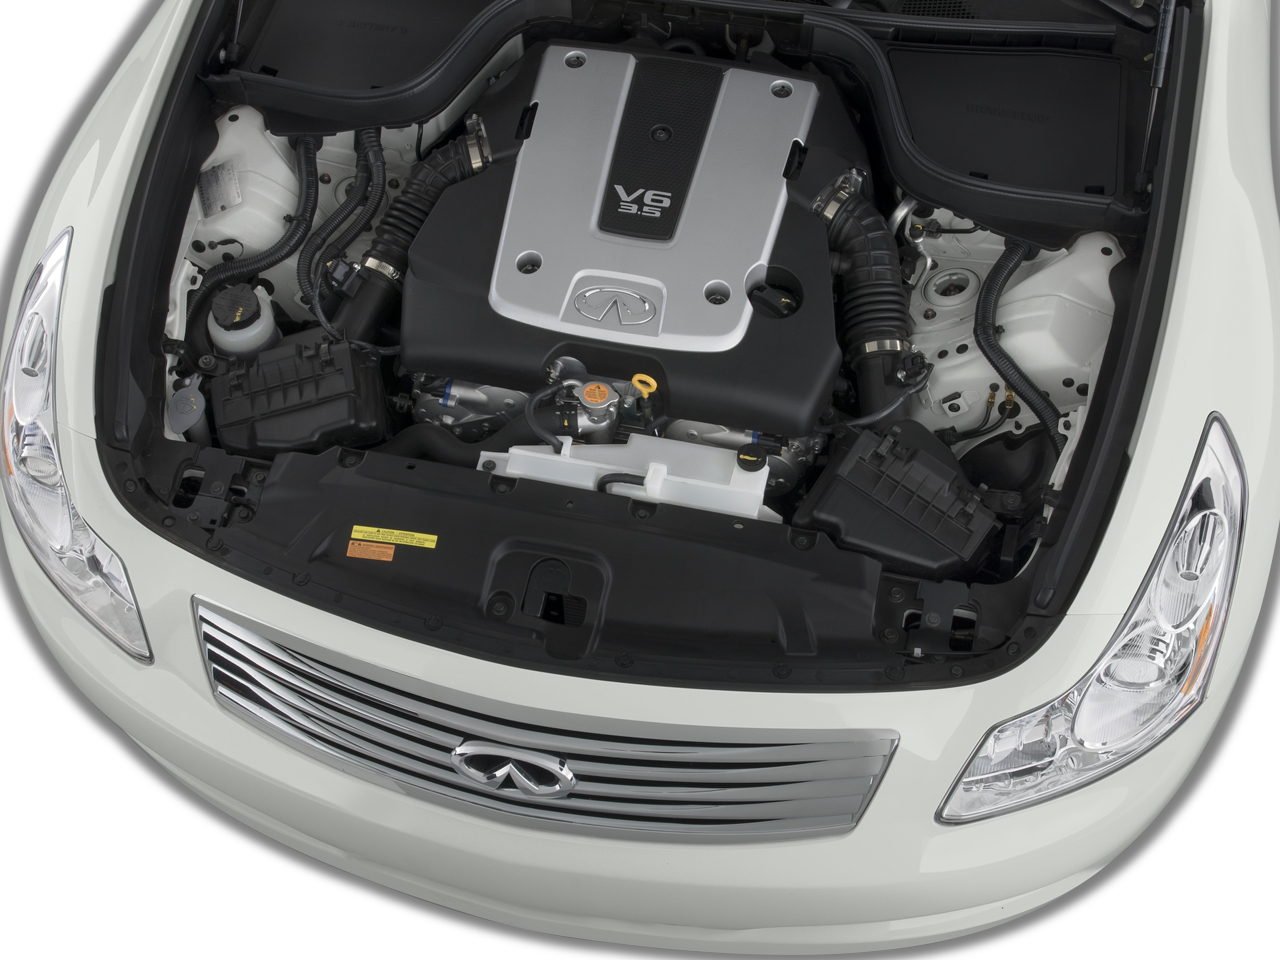 Diagram Of 2008 Infiniti Engine